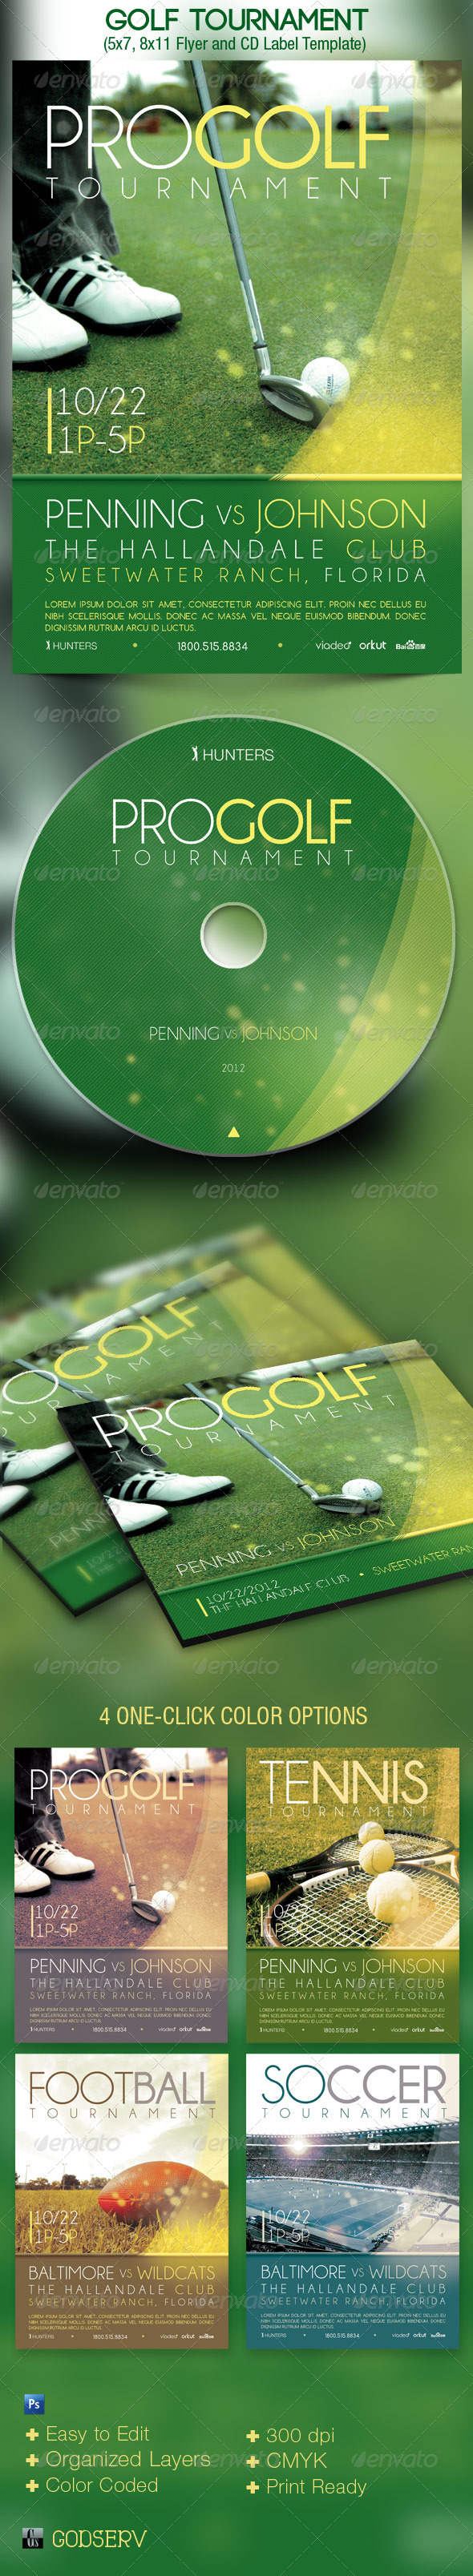 Golf Tournament Event Flyer CD Template - Sports Events